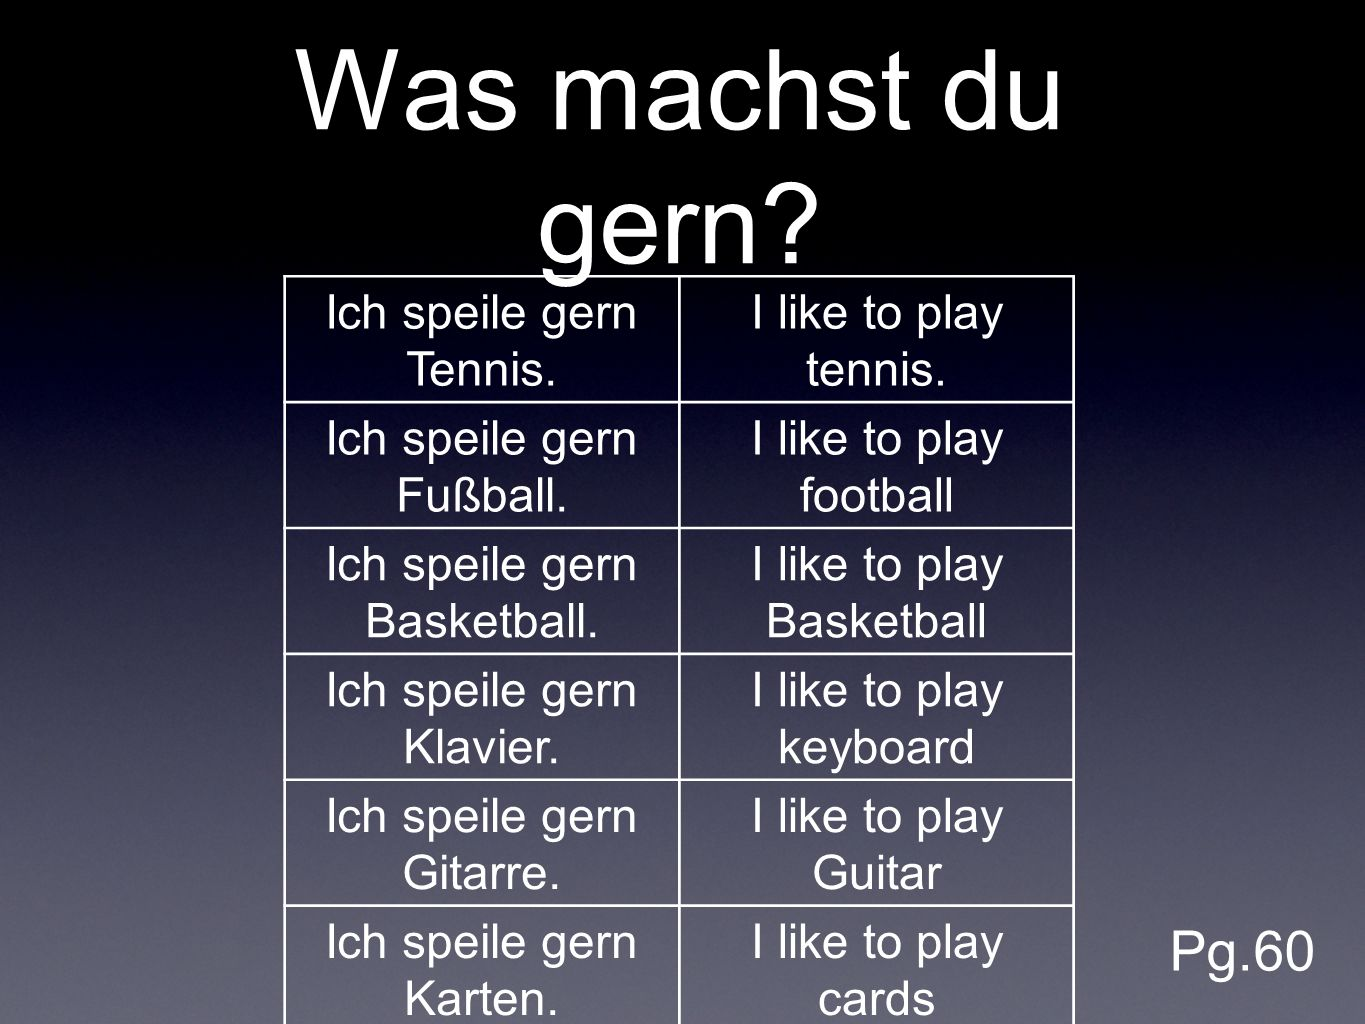 Was machst du gern? Ich speile gern Tennis. I like to play tennis. Ich speile gern Fußball. I like to play football Ich speile gern Basketball. I like